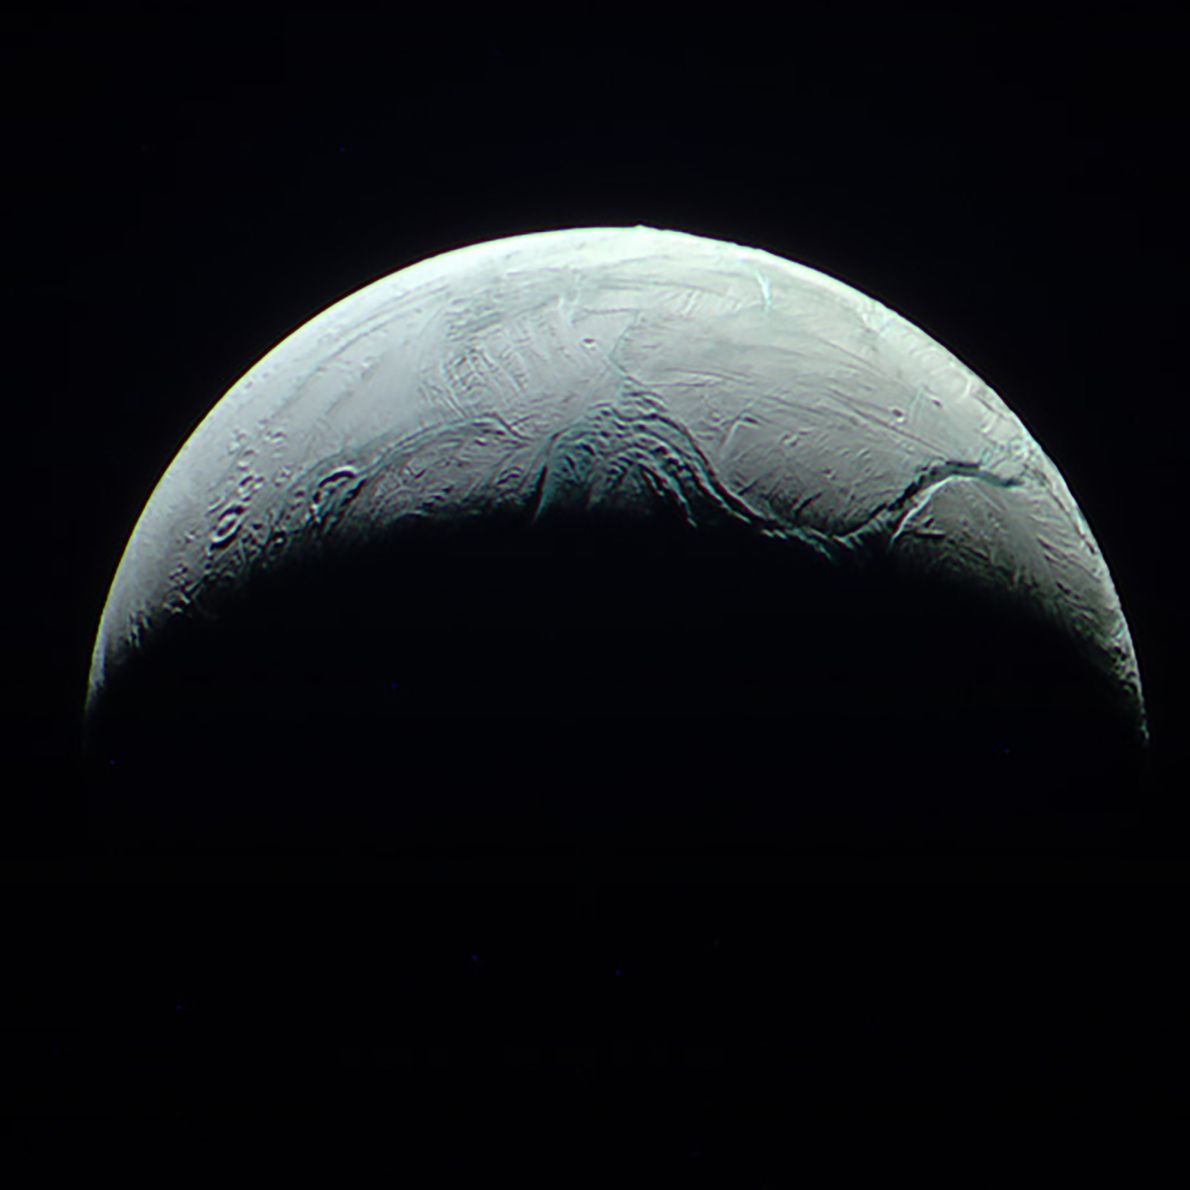 Cassini captured this detailed view of Saturn's icy moon Enceladus from a distance of about 112,000 ...